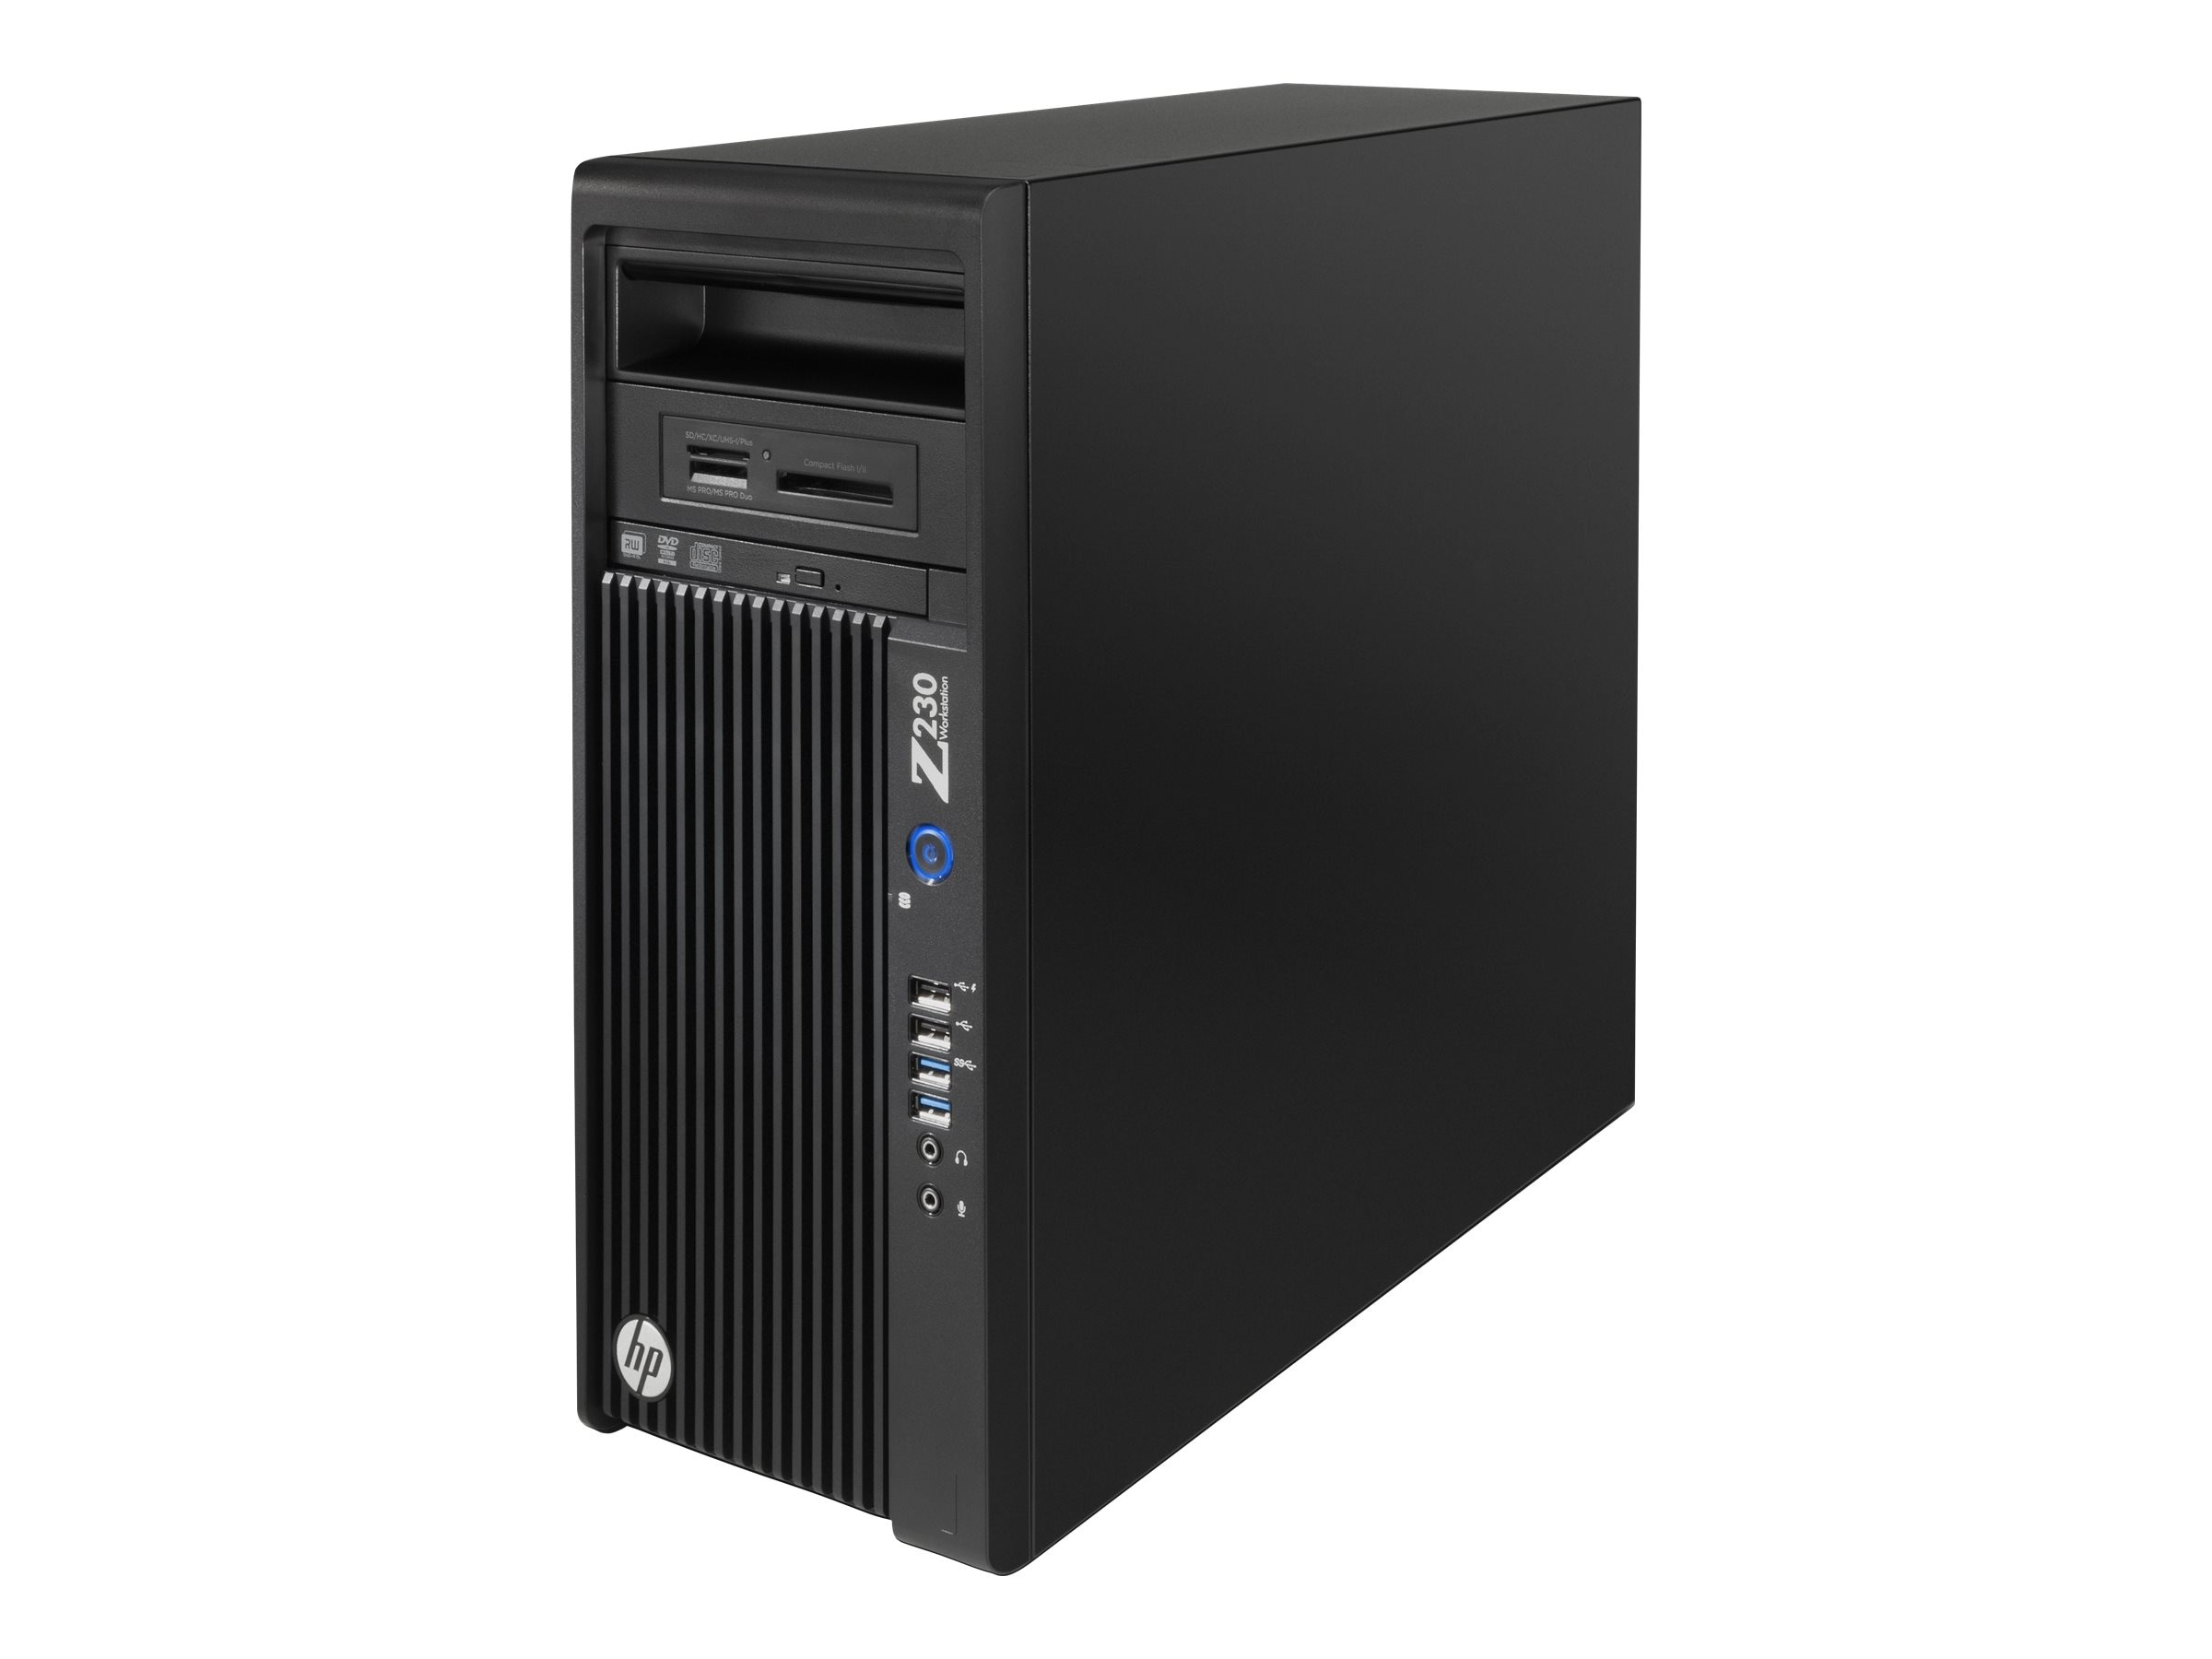 HP Z230 3.6GHz Core i7 Microsoft Windows 7 Professional 64-bit Edition   Windows 8.1 Pro, L0P61UT#ABA, 23407807, Workstations